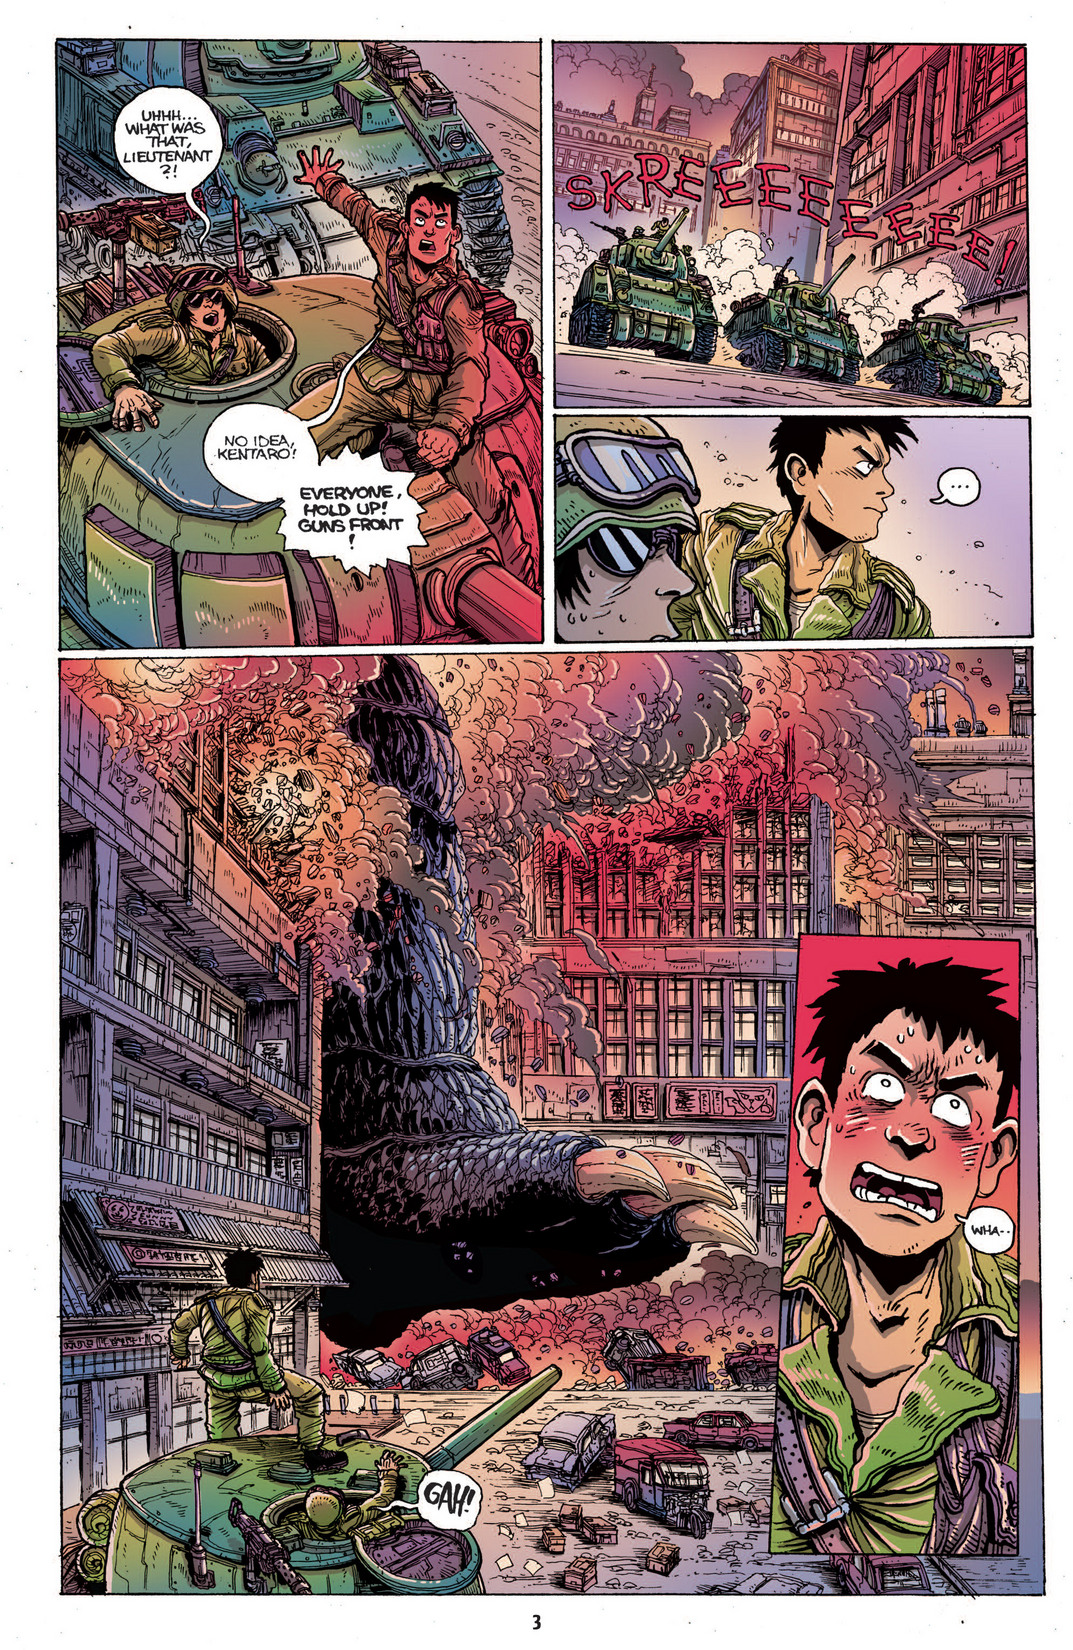 HALF-CENTURY WAR Issue 1 - Page 3.jpg